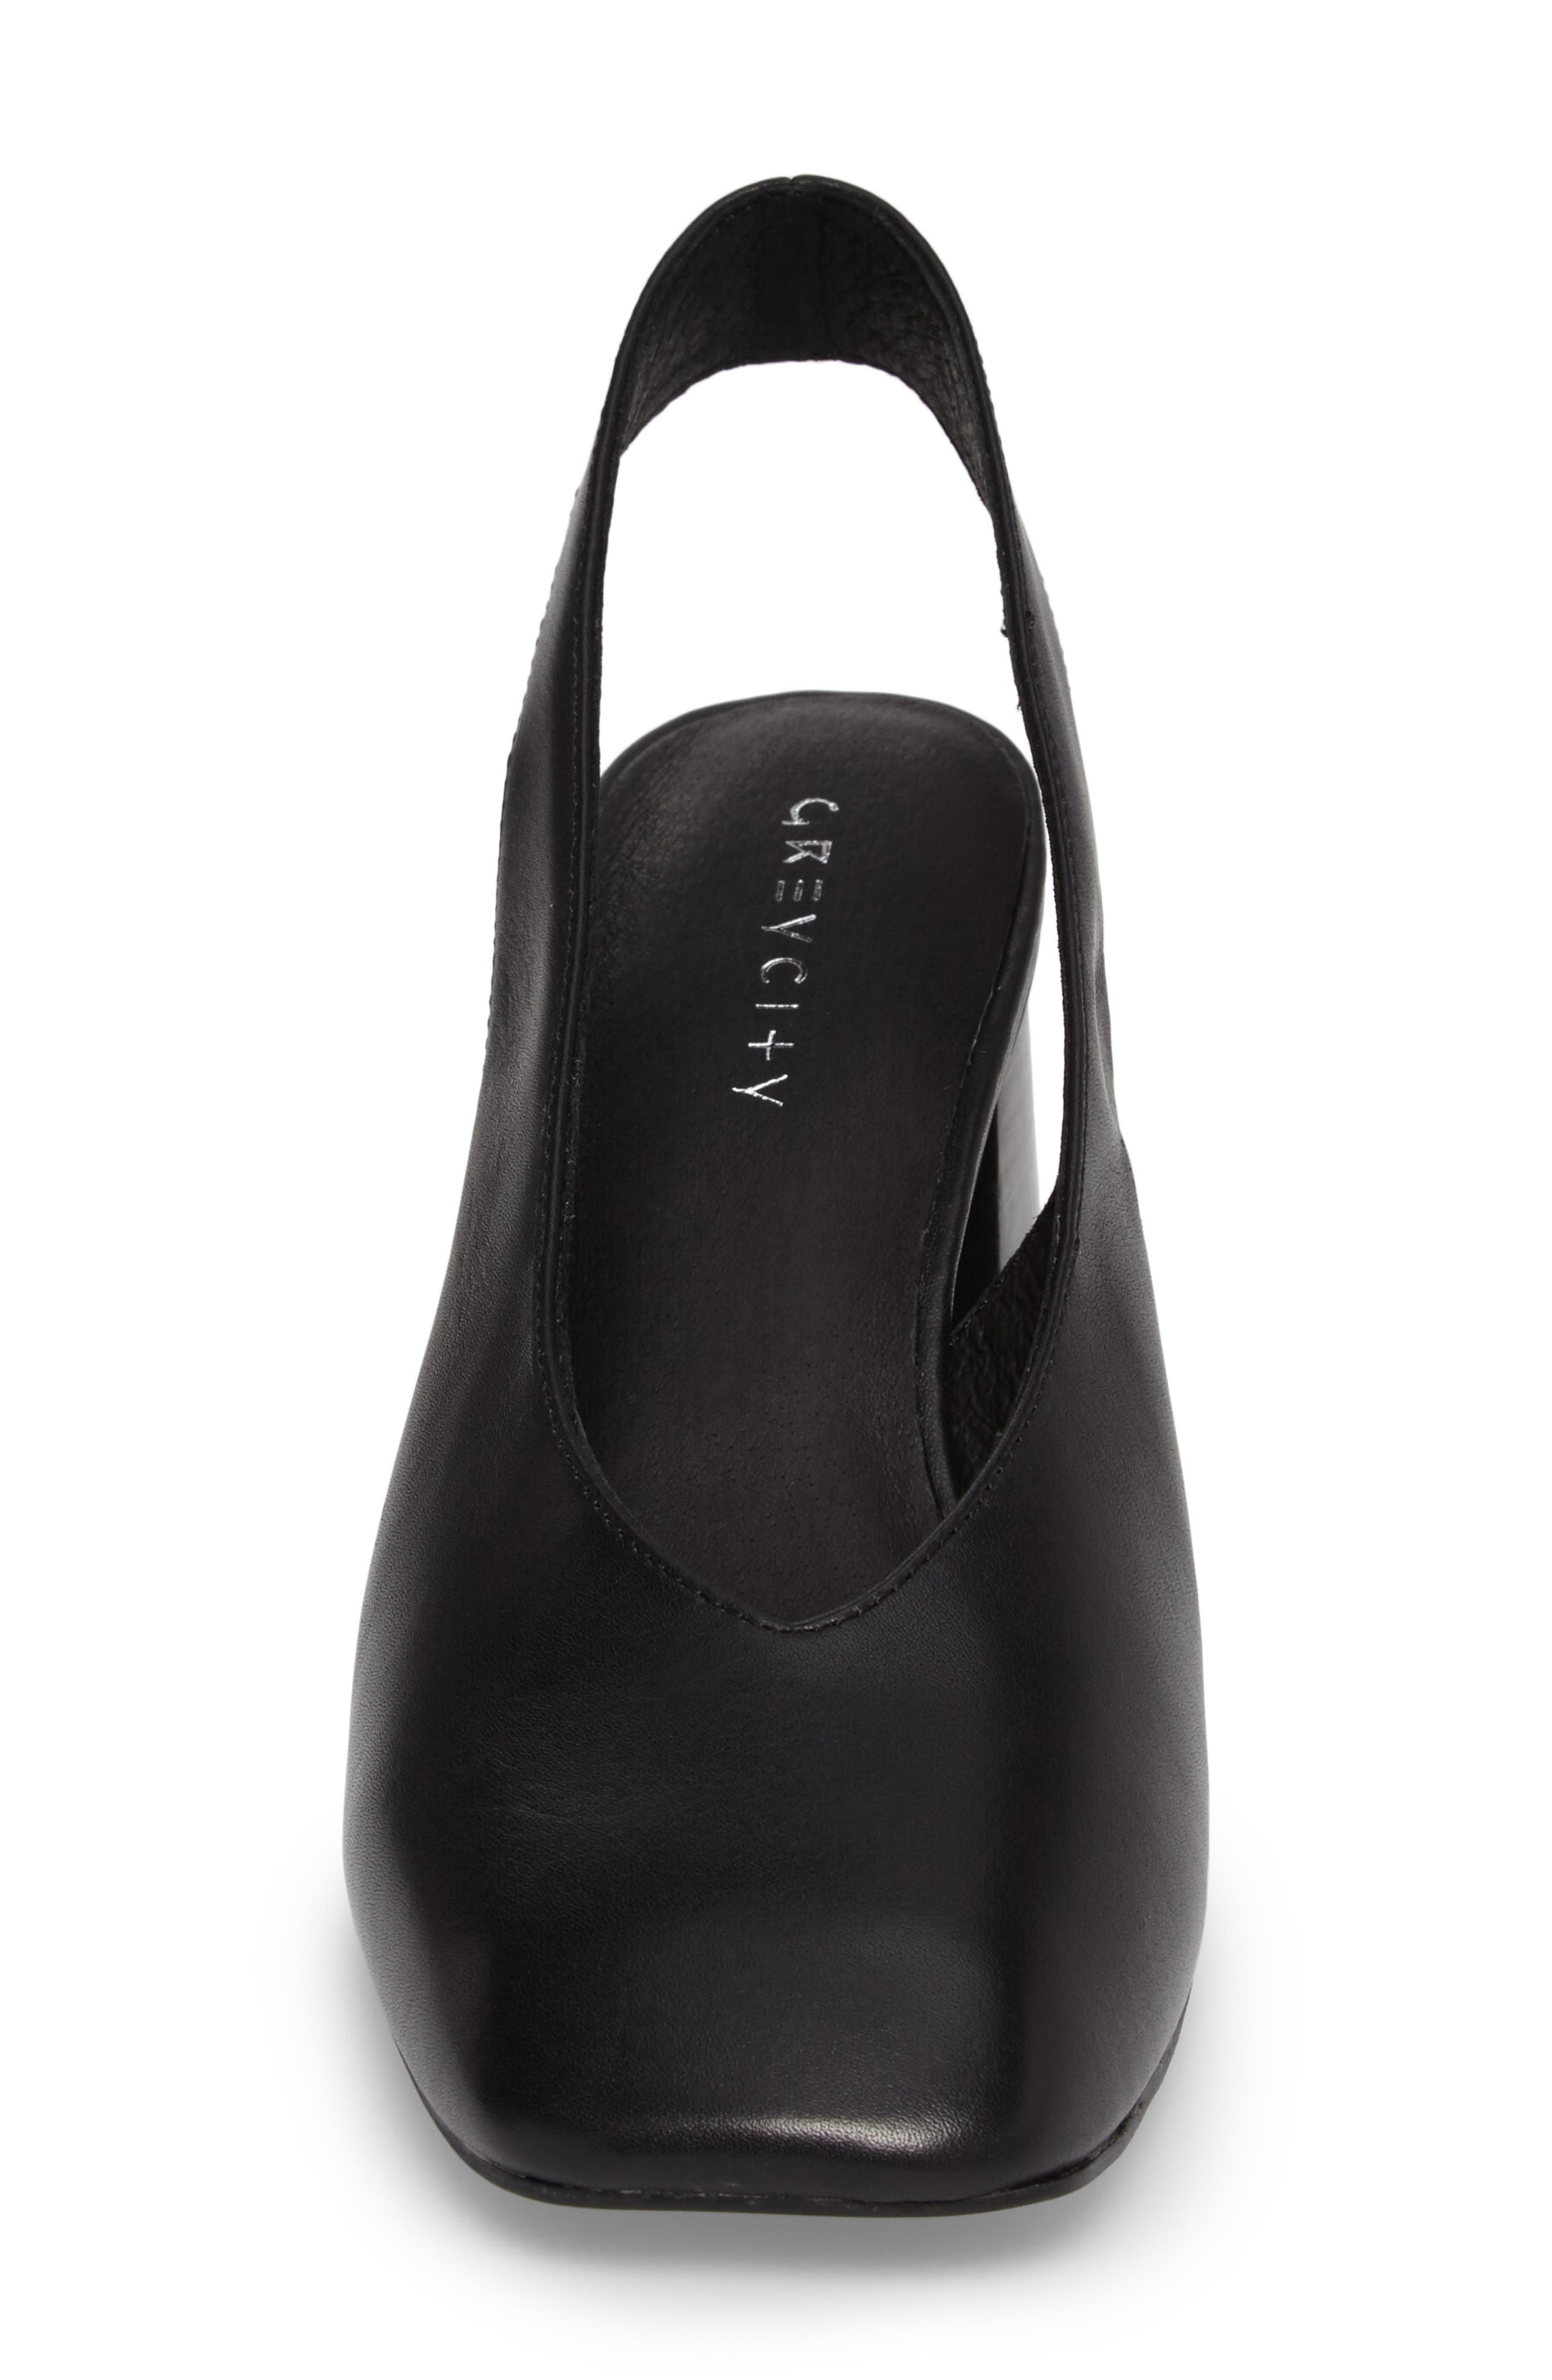 Sydney Square-Toe Slingback Pump,                             Alternate thumbnail 4, color,                             Black